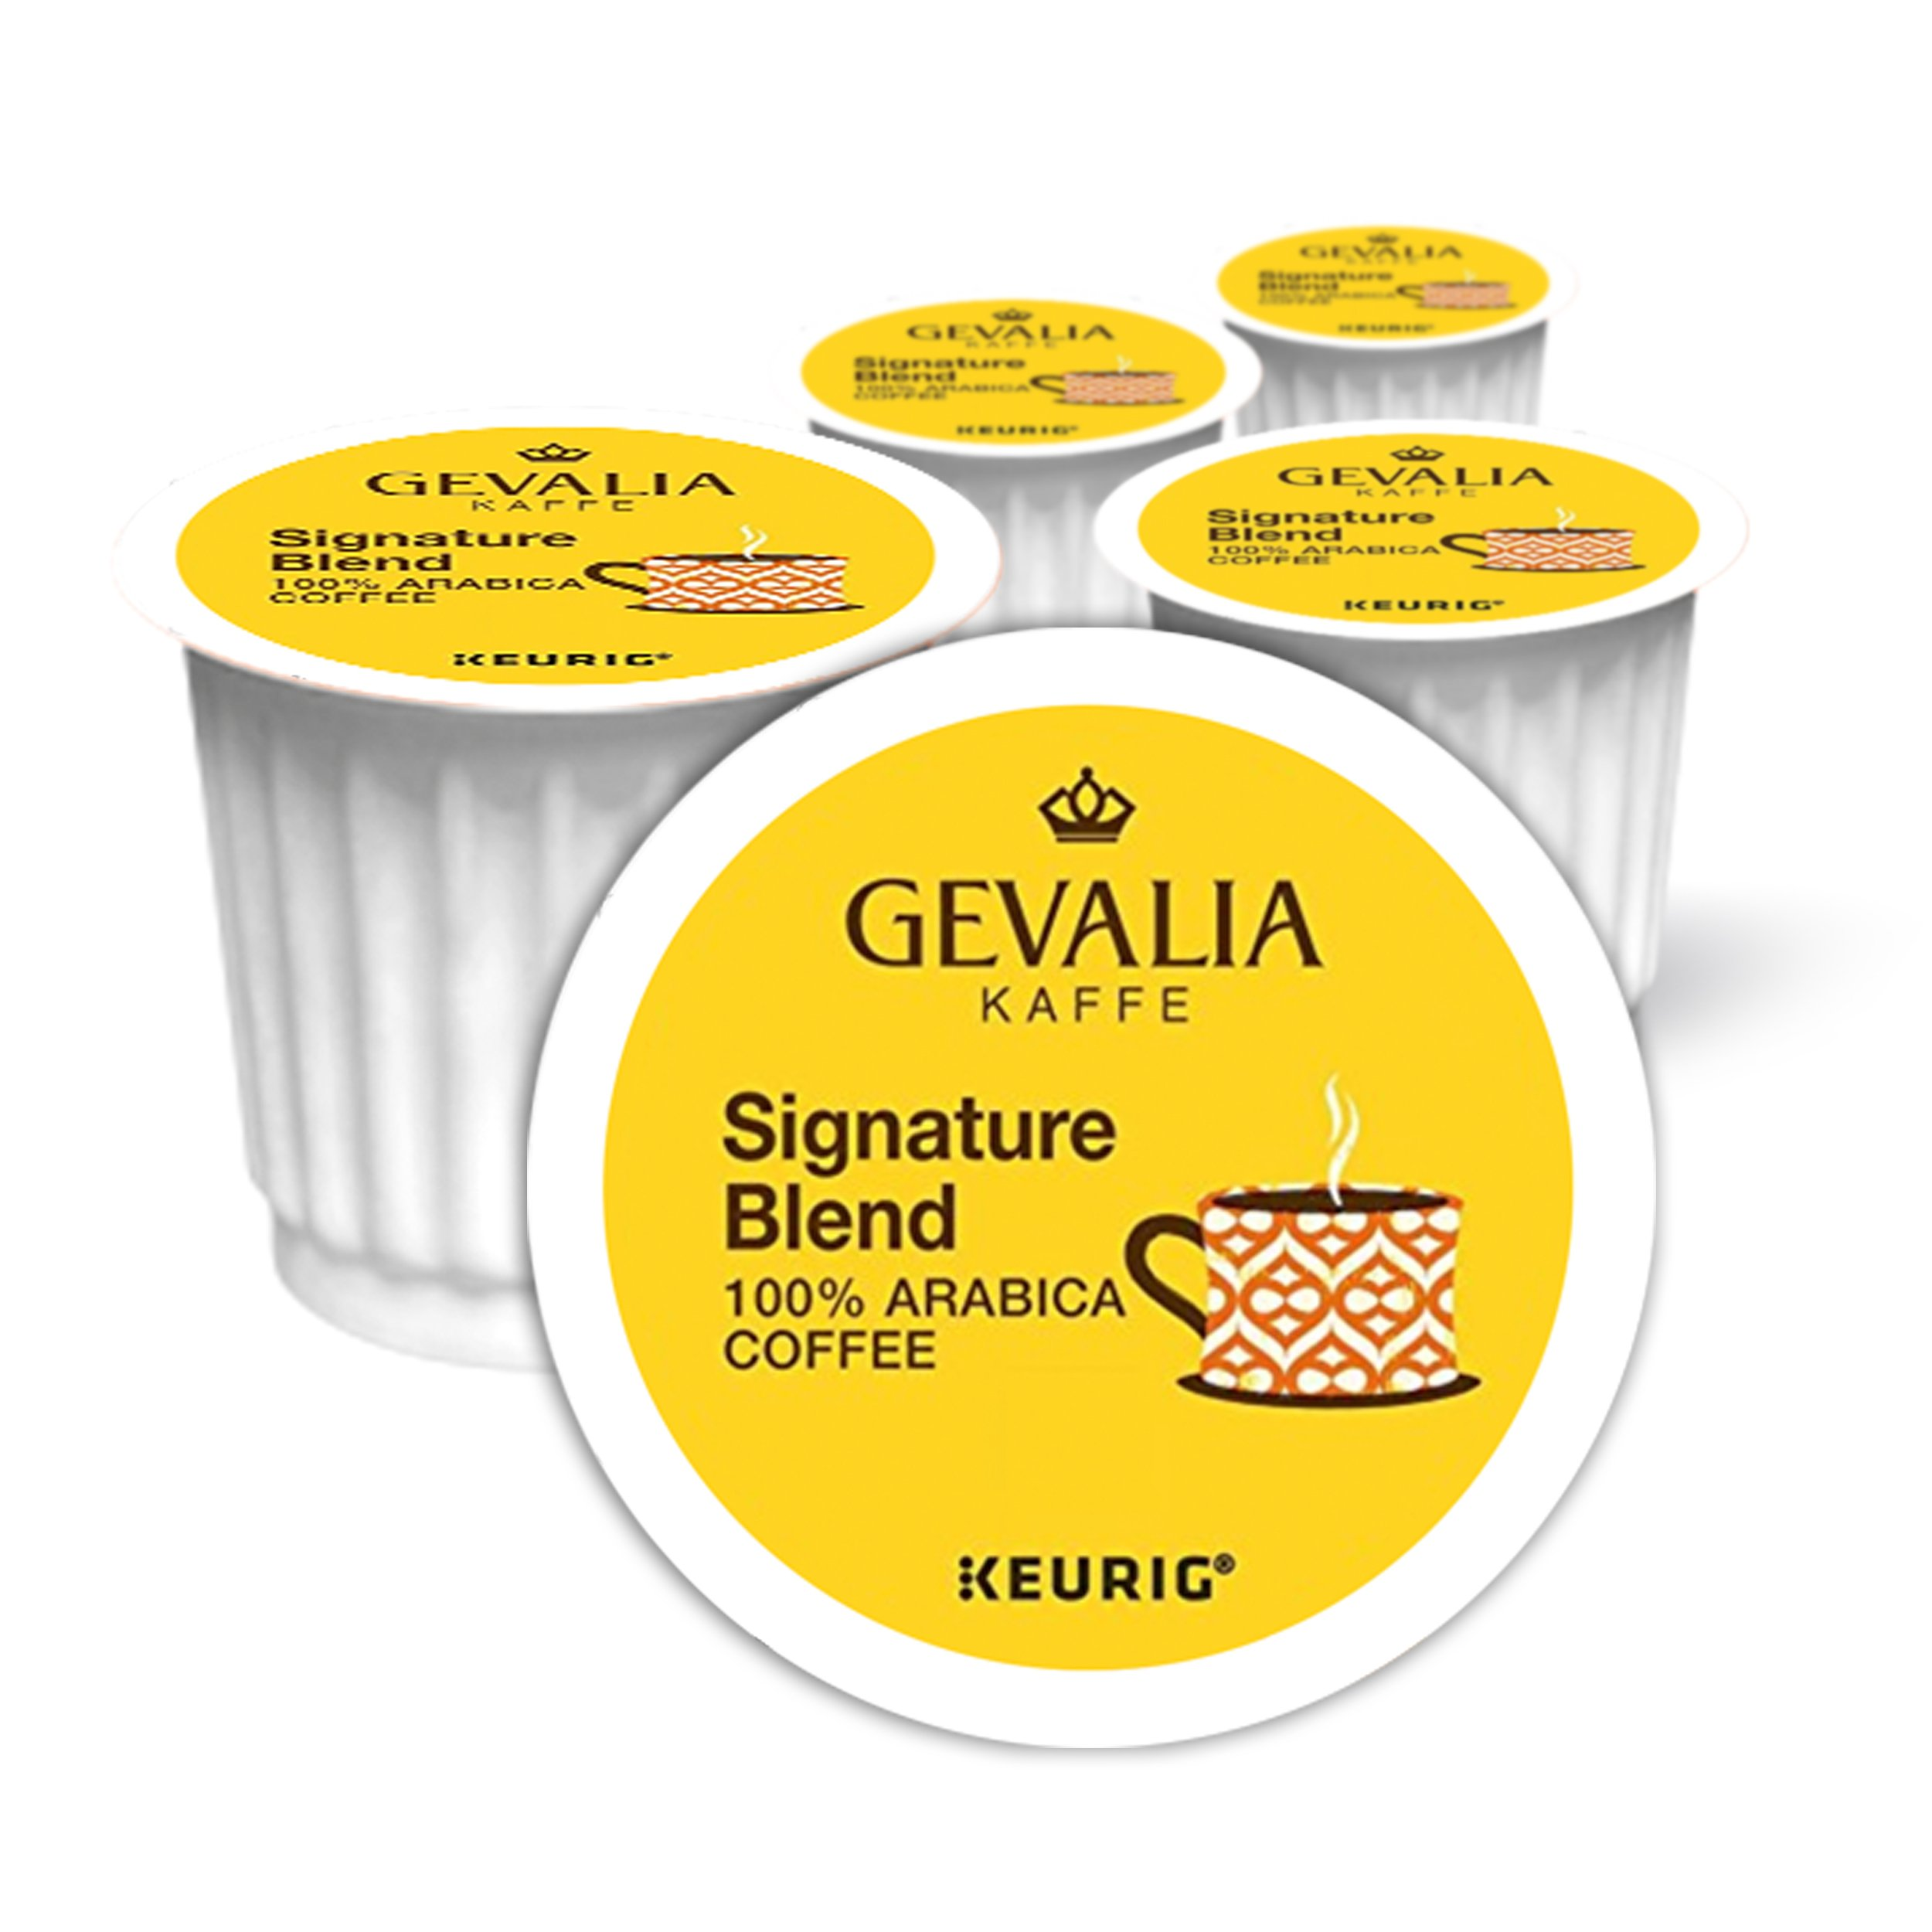 Gevalia Signature Blend Coffee, K-CUP Pods, 100 Count by Gevalia (Image #2)